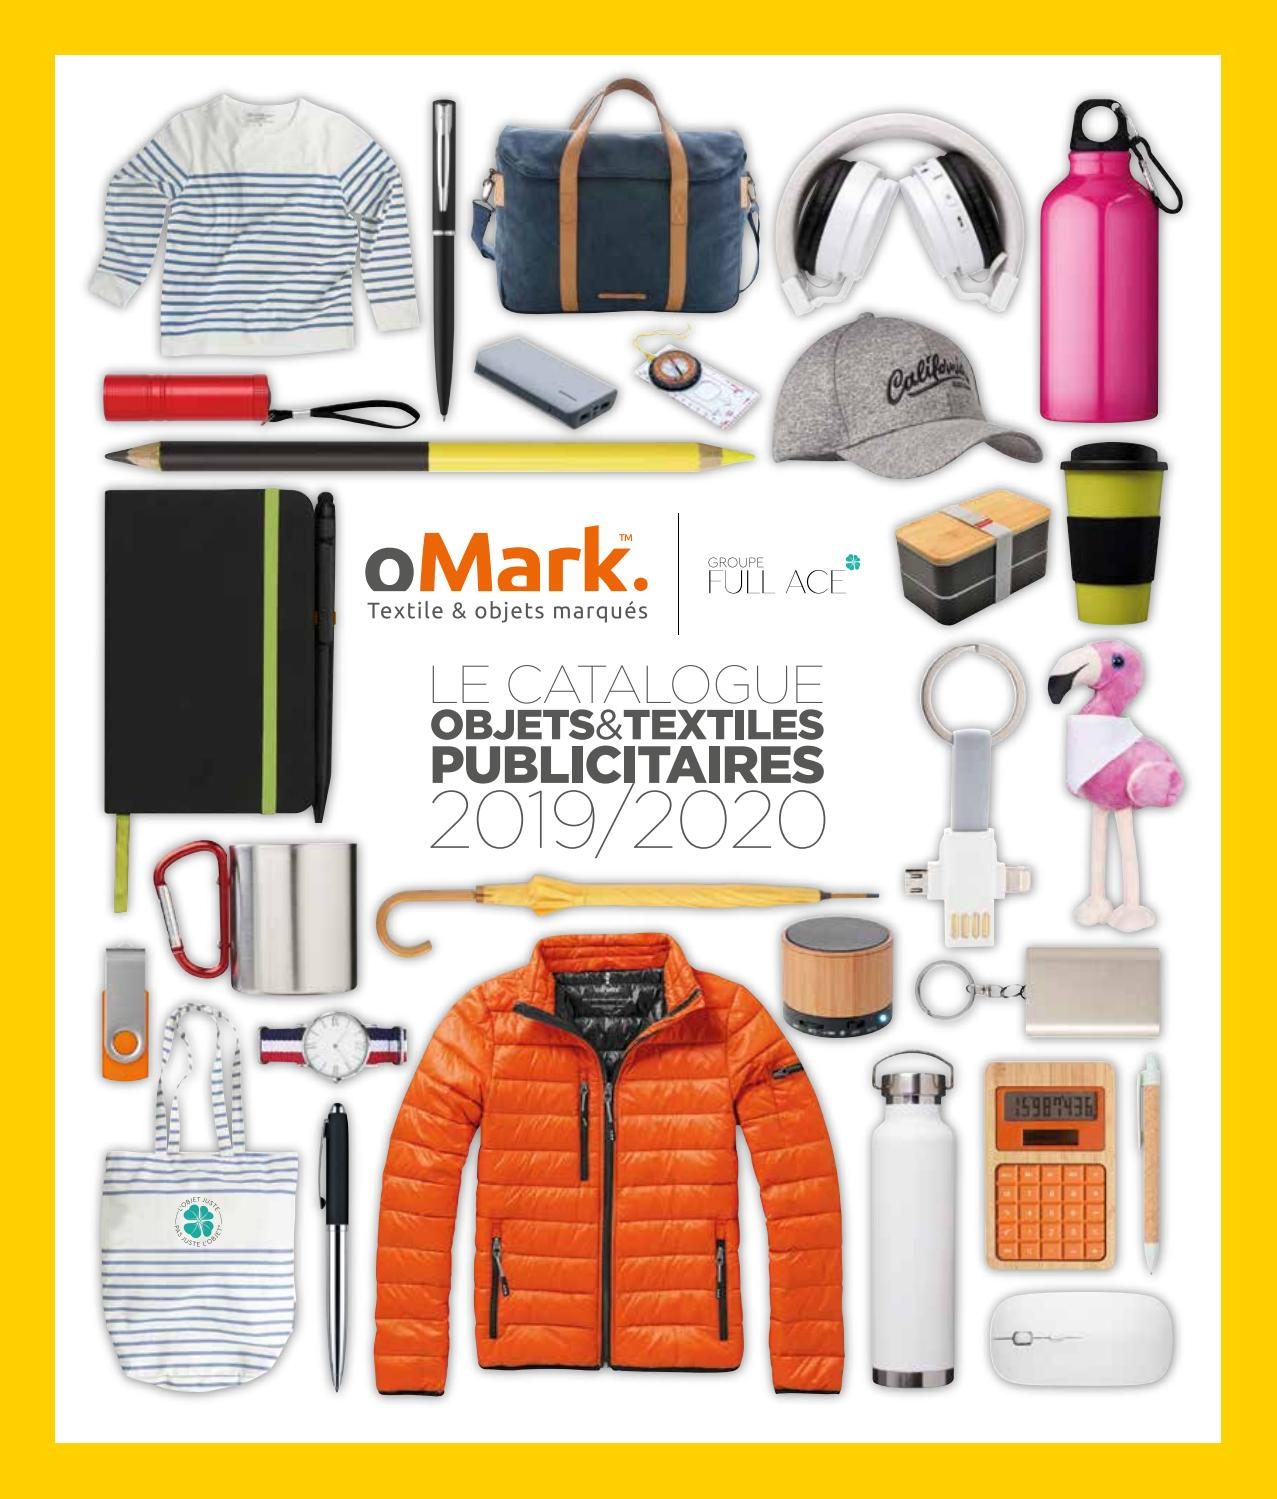 OG10 OMARK by Objectif Goodies issuu